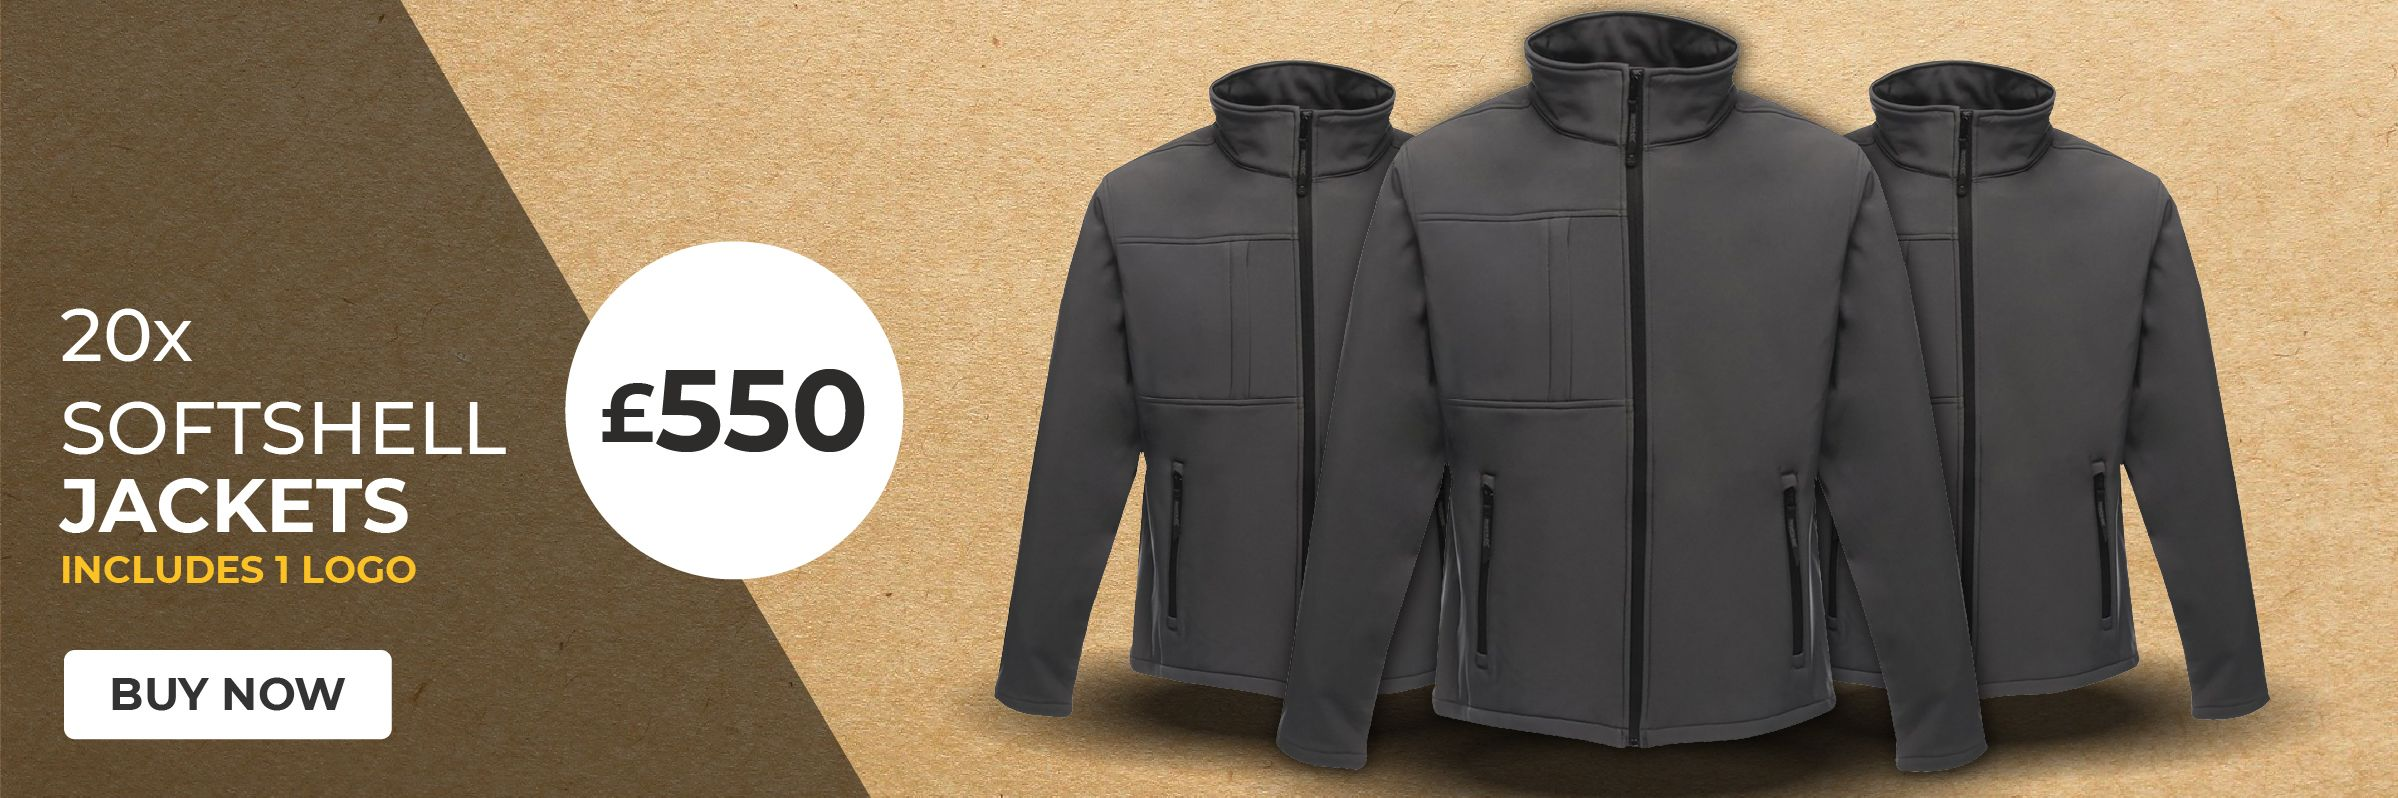 20 x Softshell Jackets for £550